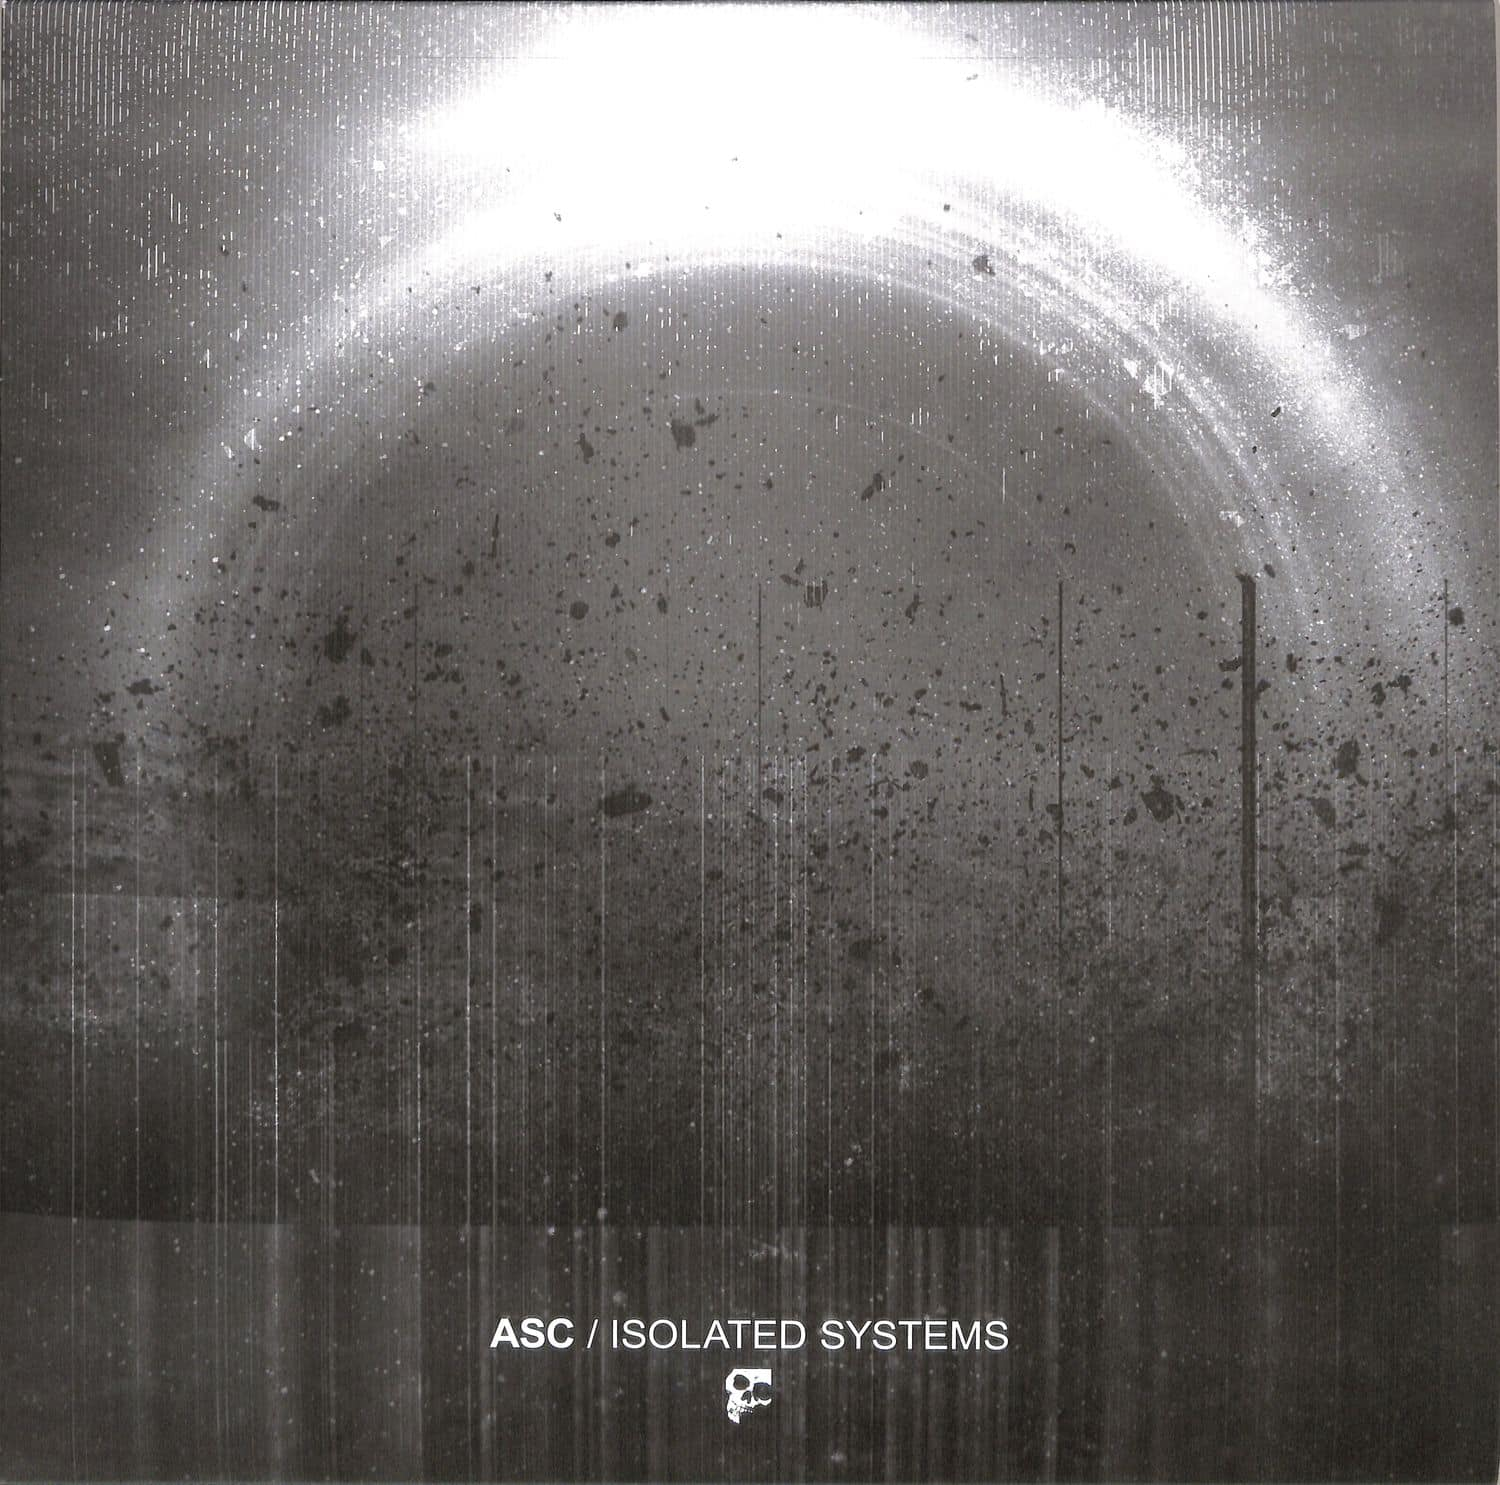 ASC - ISOLATED SYSTEMS